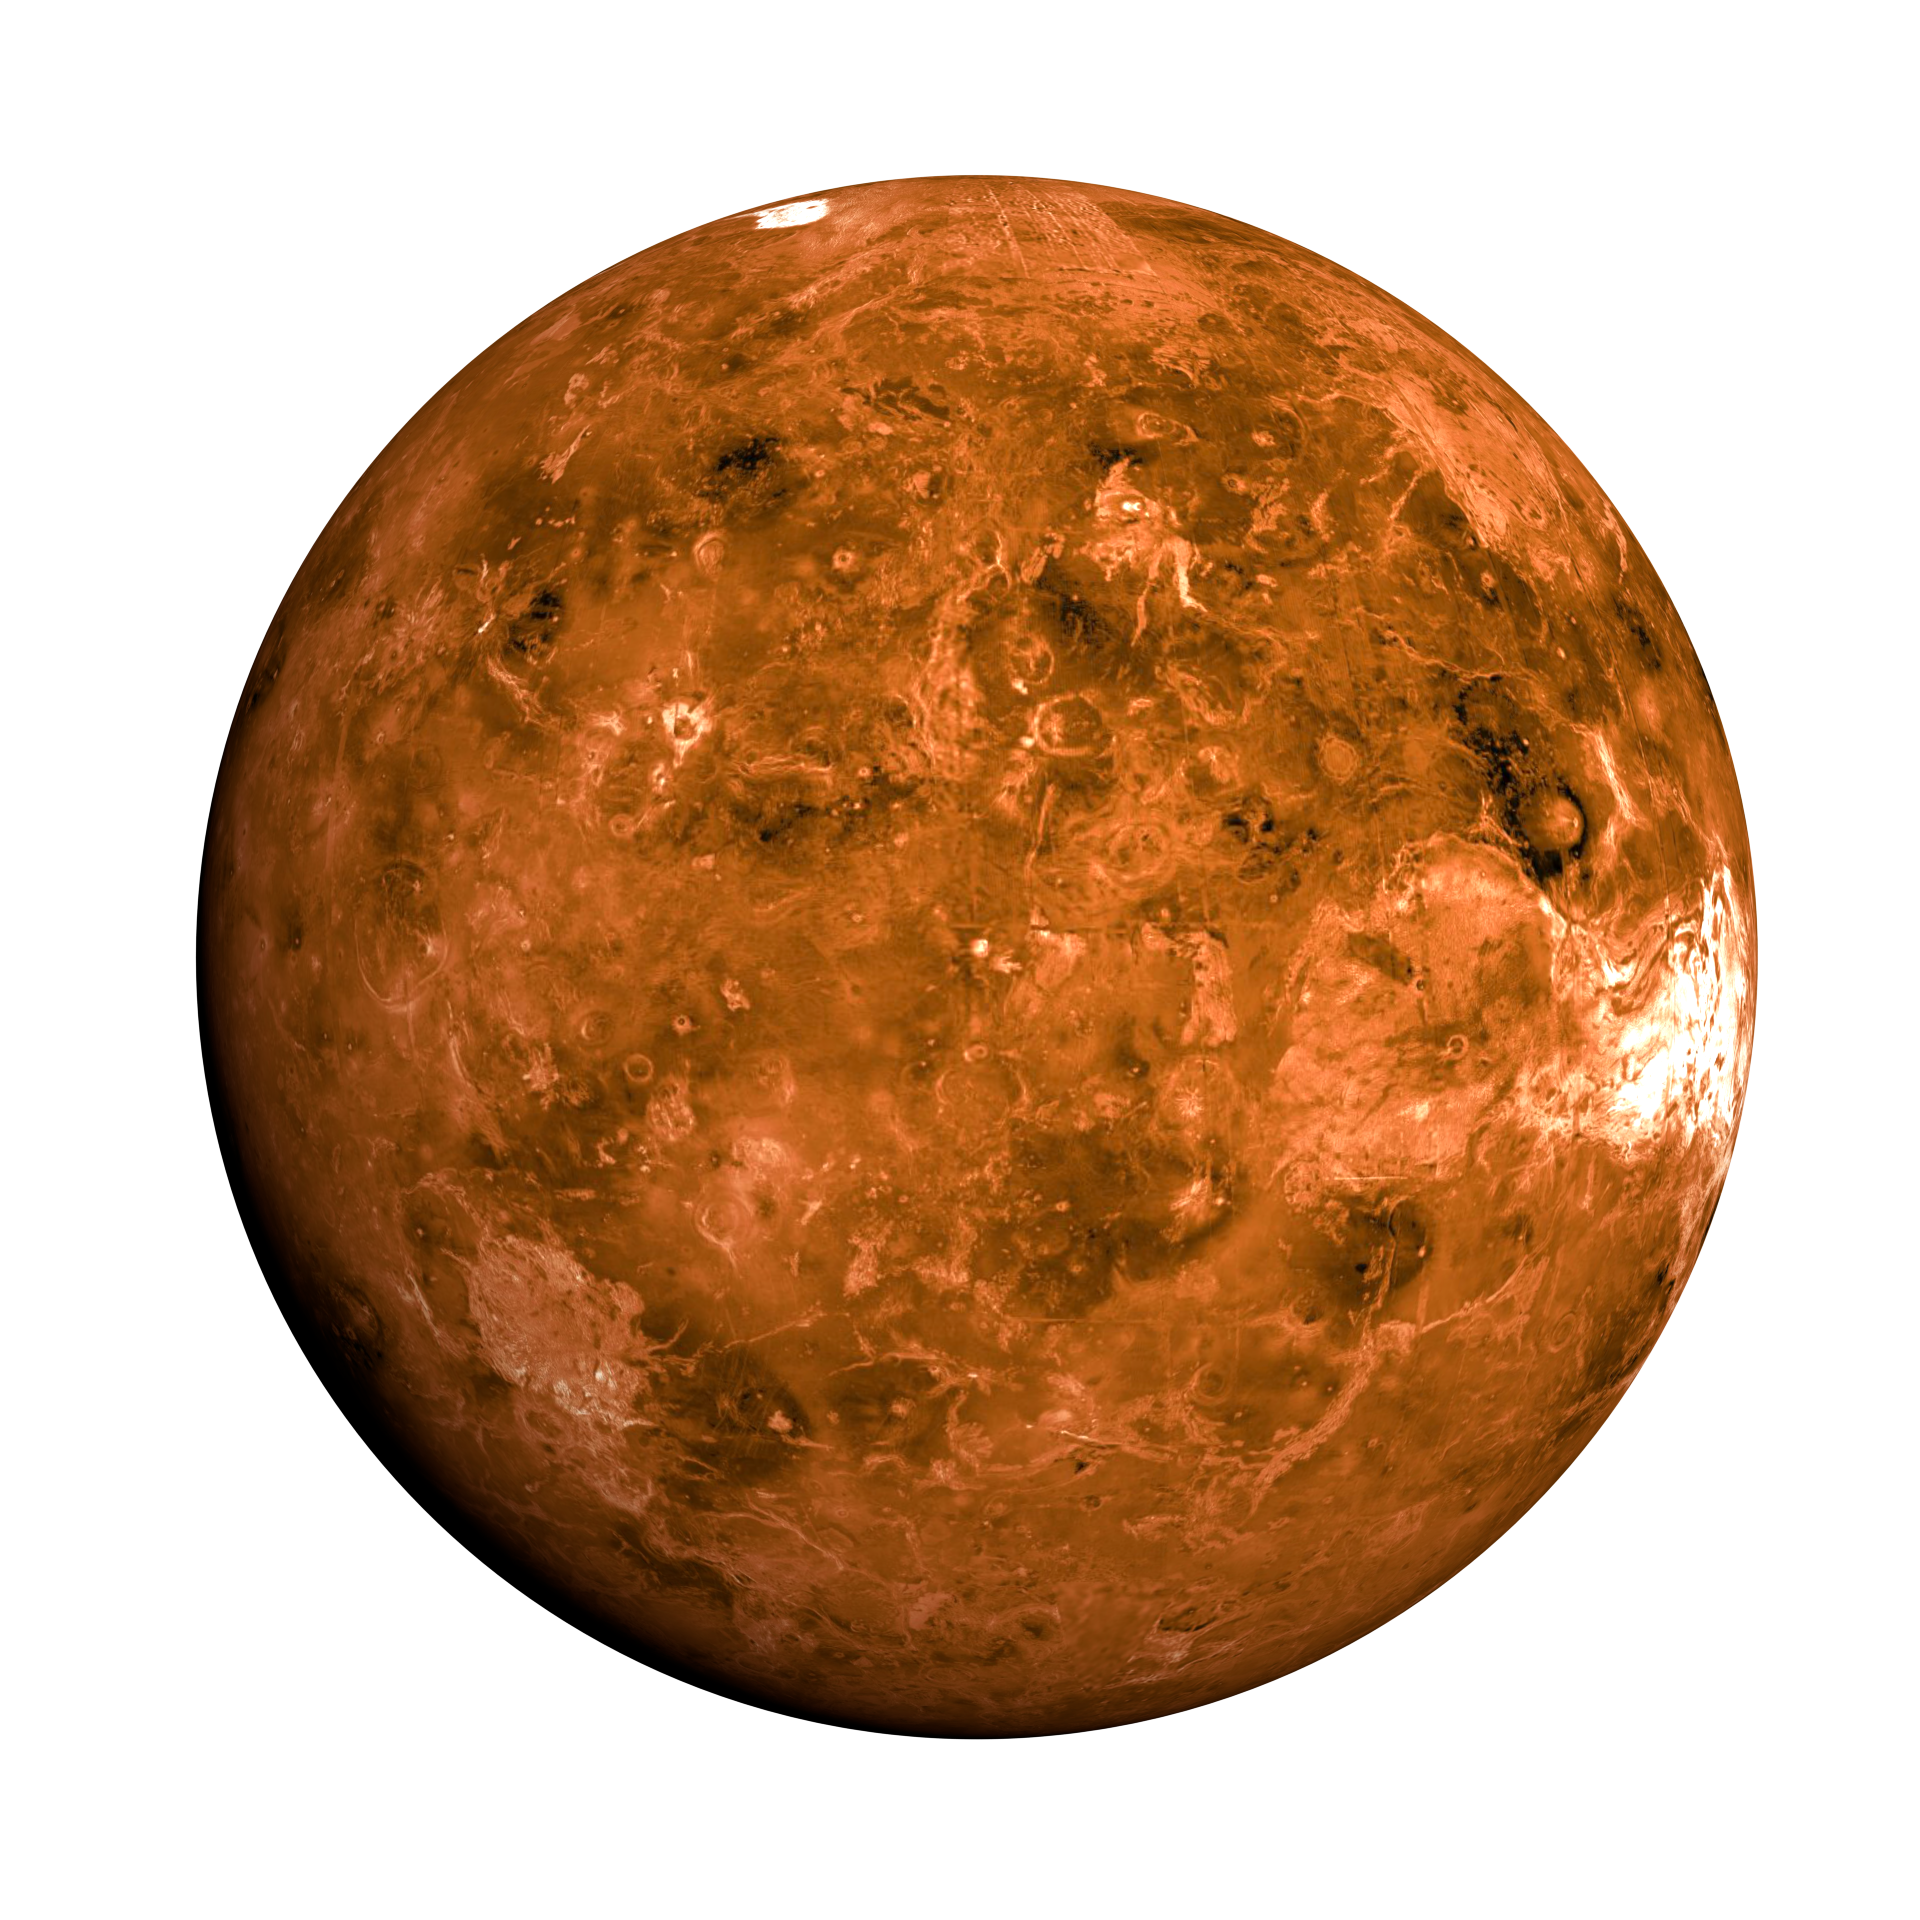 Images of png spacehero. Mars clipart planet venus